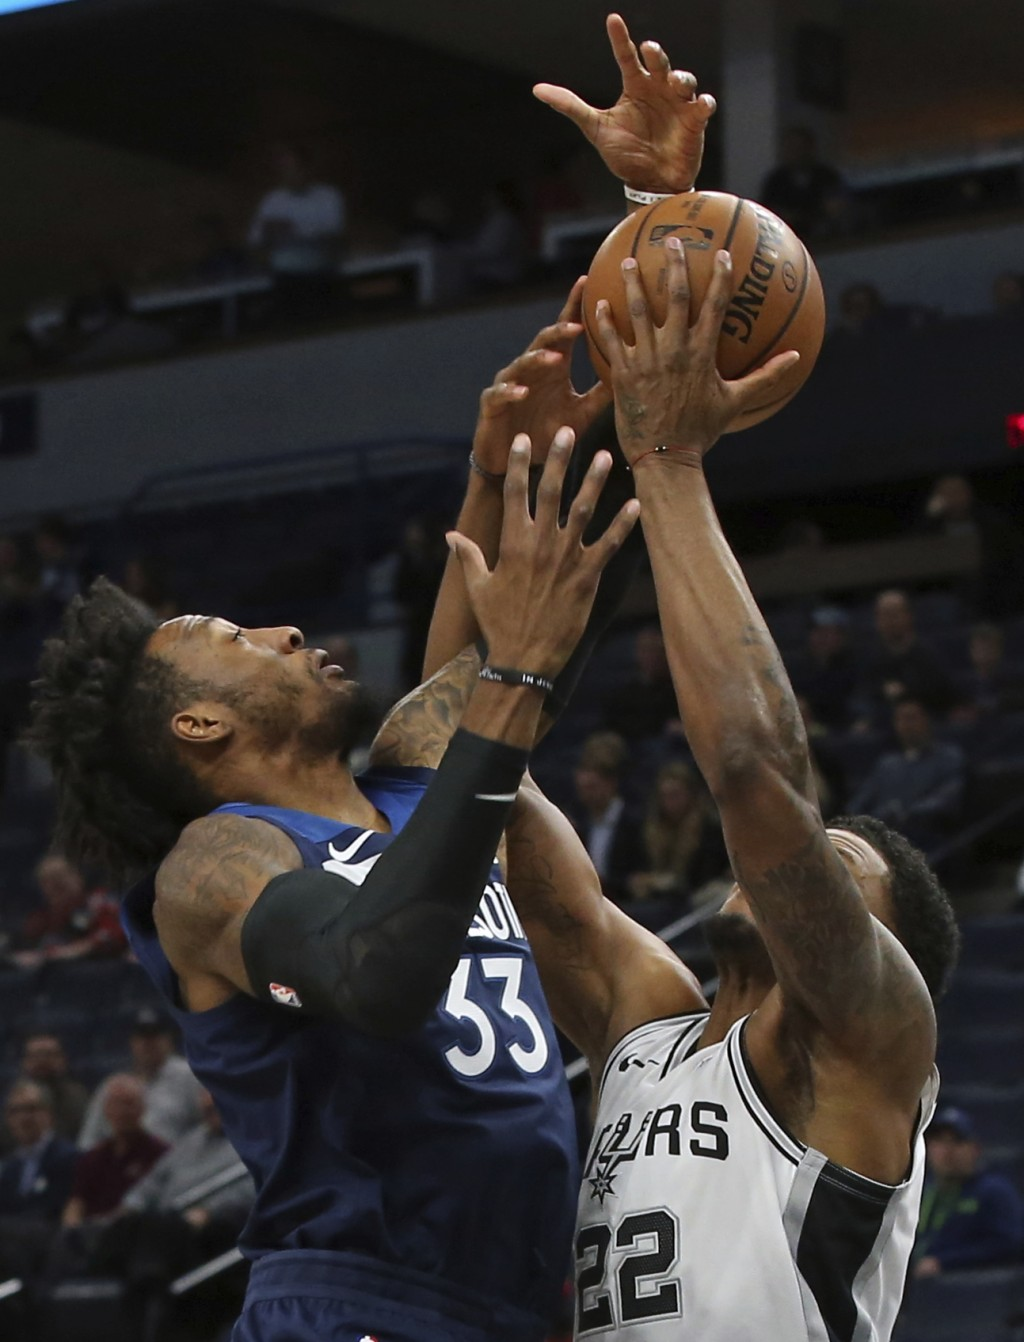 San Antonio Spurs' Rudy Gay, right, tries to control the ball as Minnesota Timberwolves' Robert Covington defends in the first half of an NBA basketba...